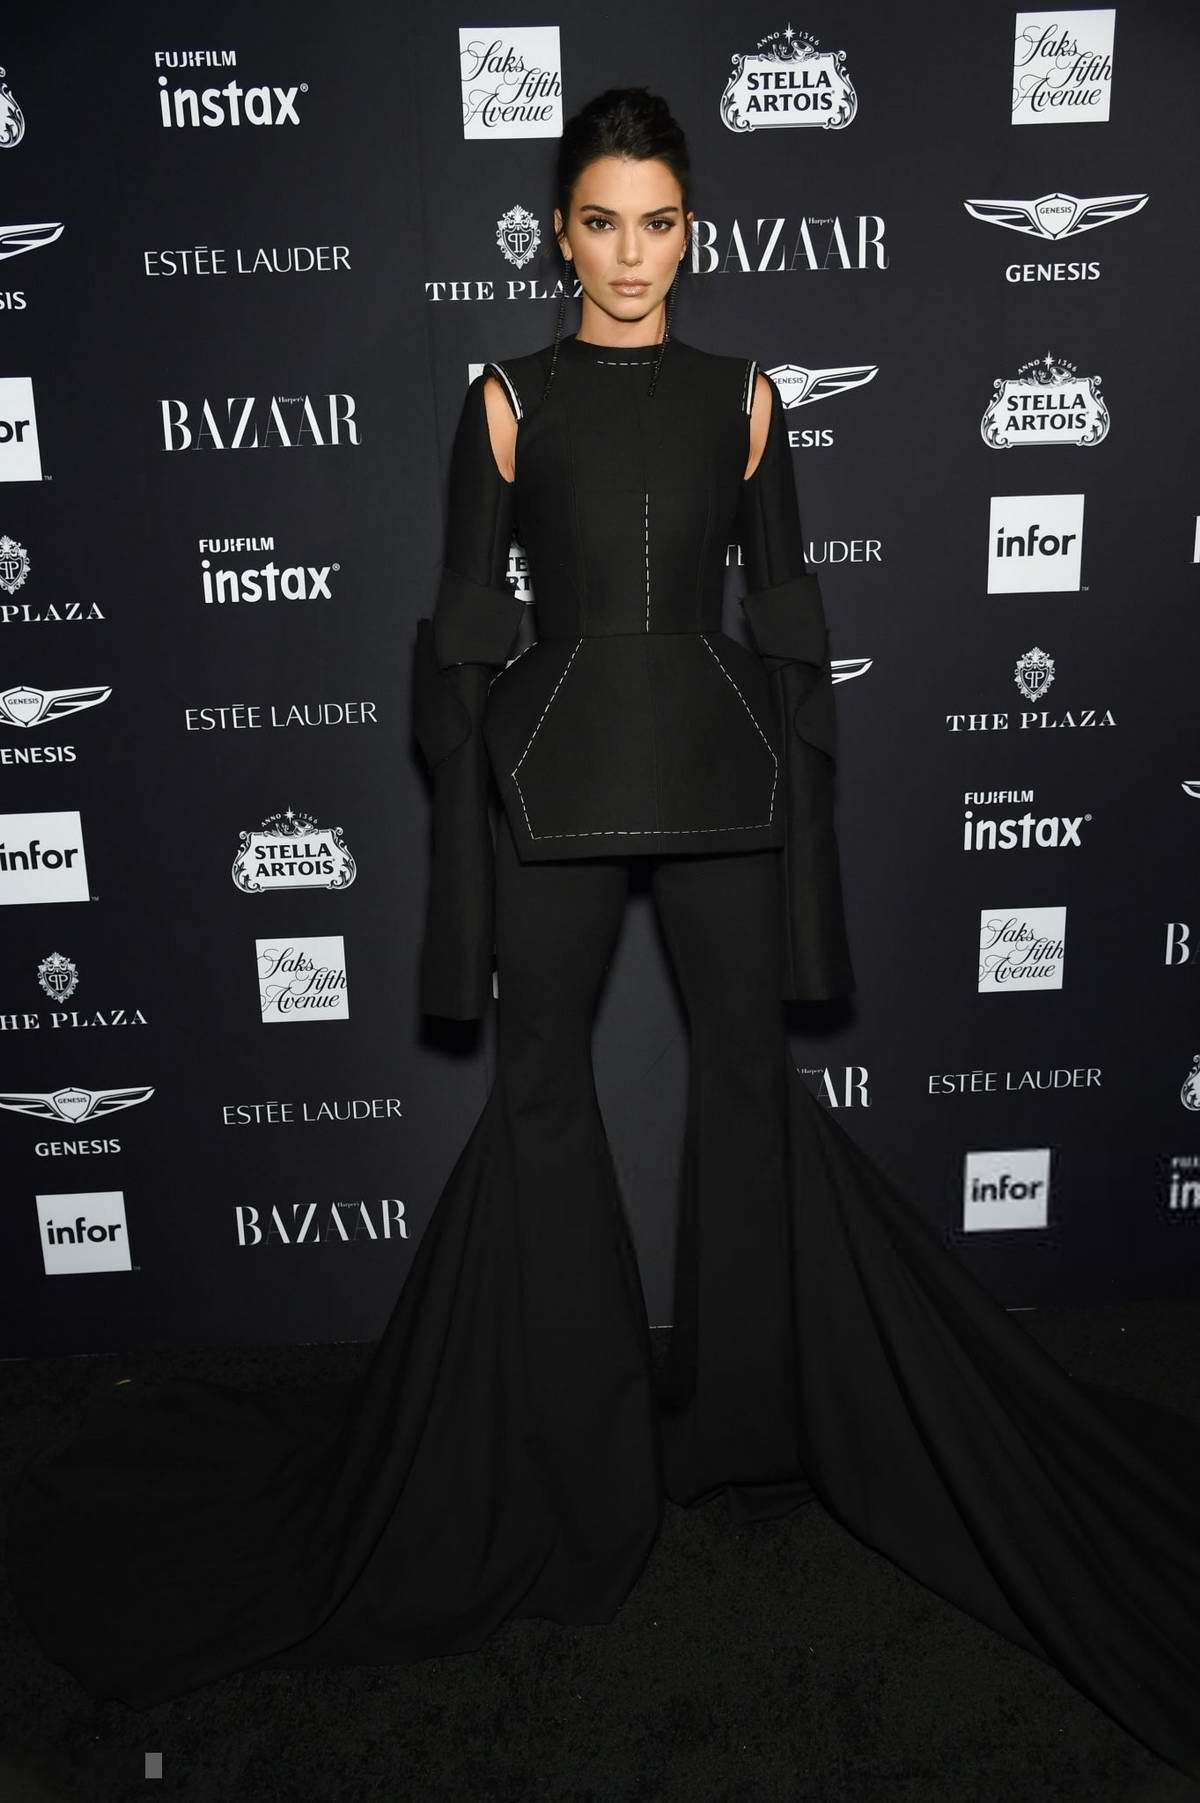 55026b9995 Kendall Jenner attends Harper's Bazaar ICONS party at the Plaza Hotel in  New York City